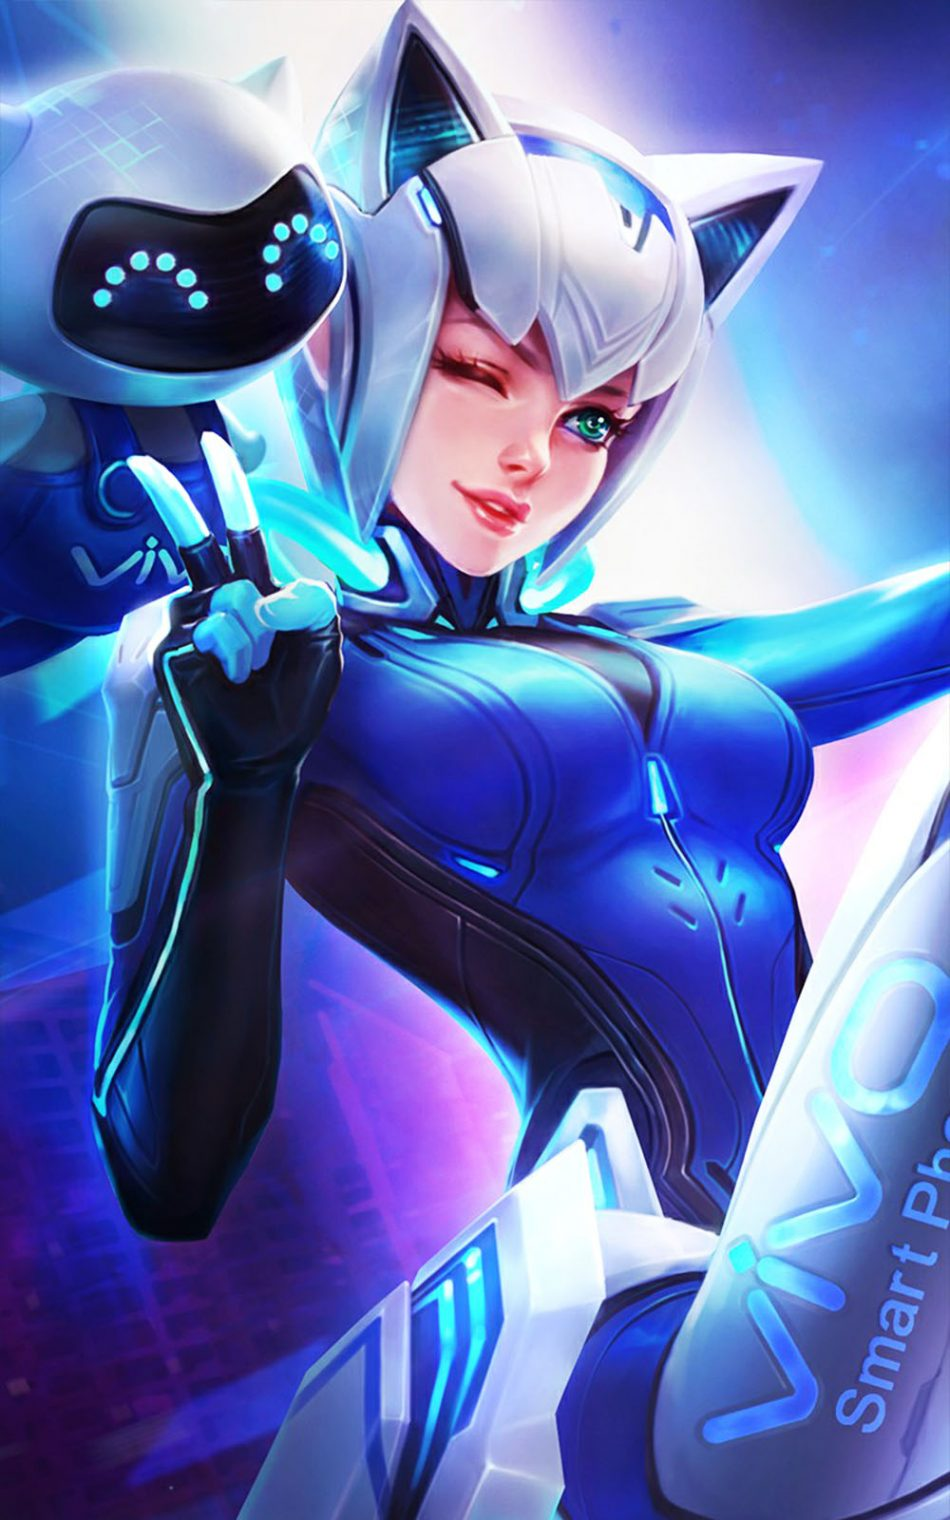 download wallpaper Eudora mobile legends hd